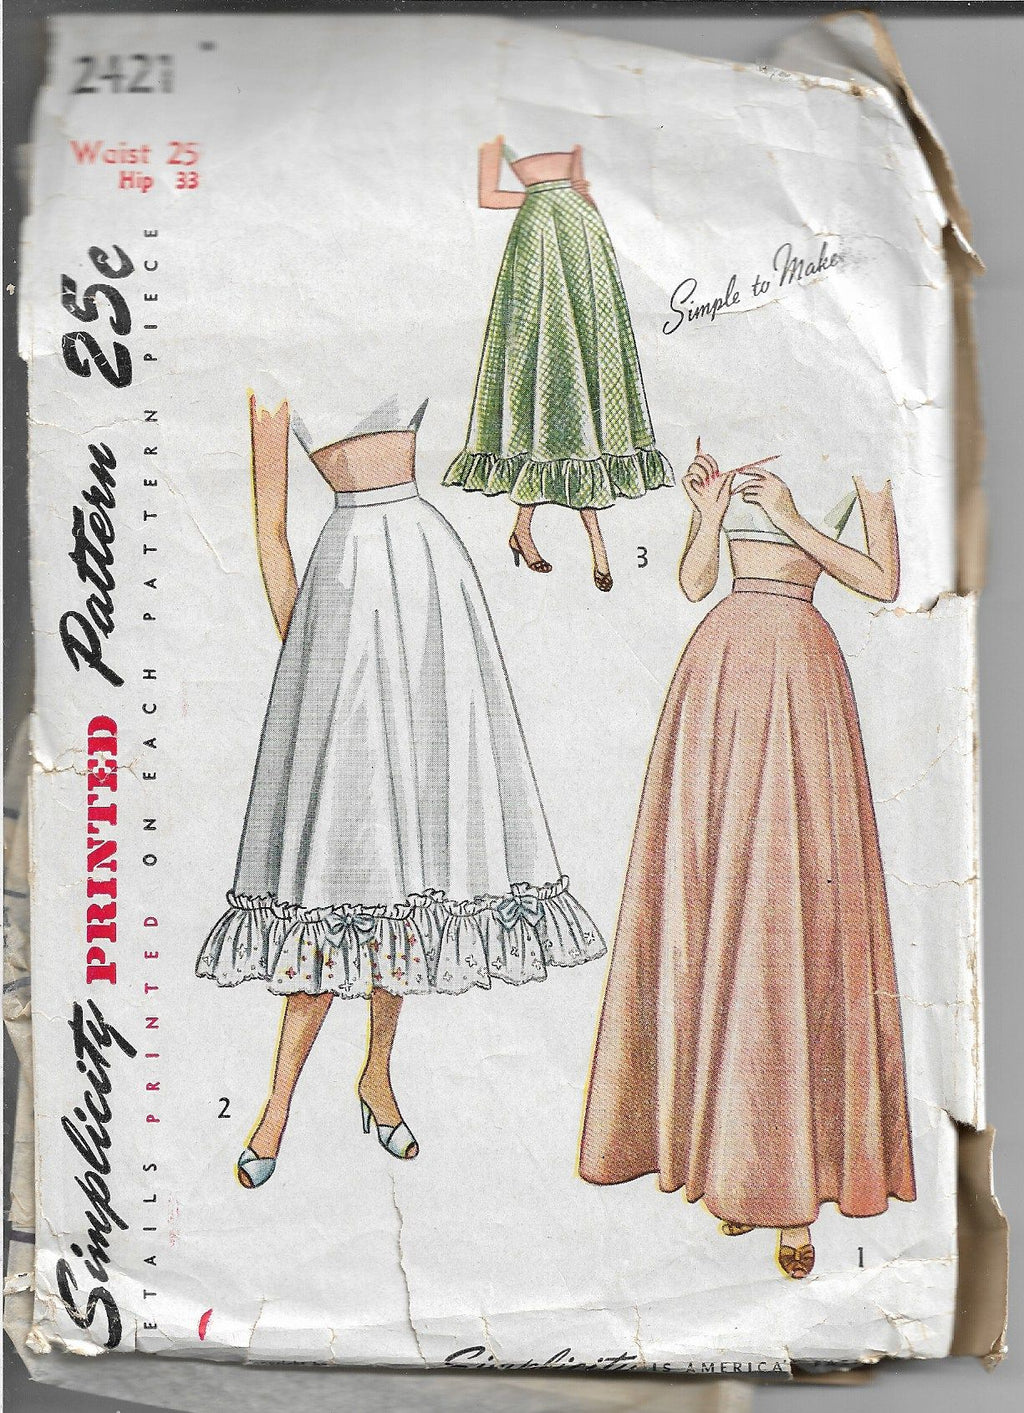 Simplicity 2421 Ladies Ballerina Petticoat Vintage Sewing Pattern 1940s - VintageStitching - Vintage Sewing Patterns